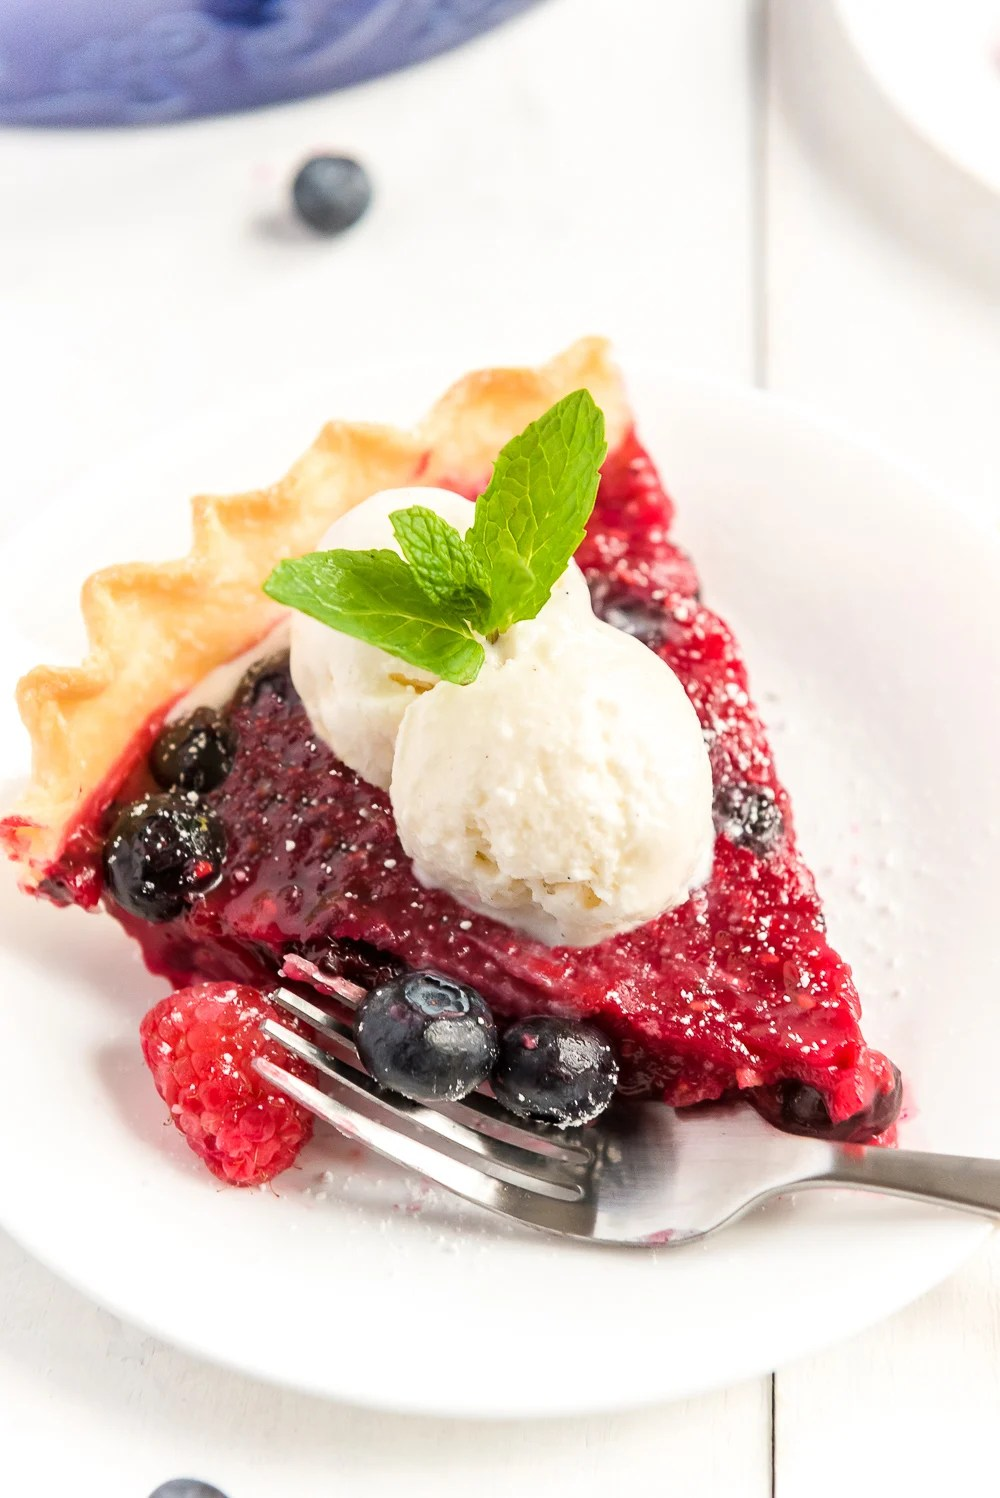 Angled photo of a slice of Mixed Berry Pie on a white plate with scoops of vanilla ice cream on top.